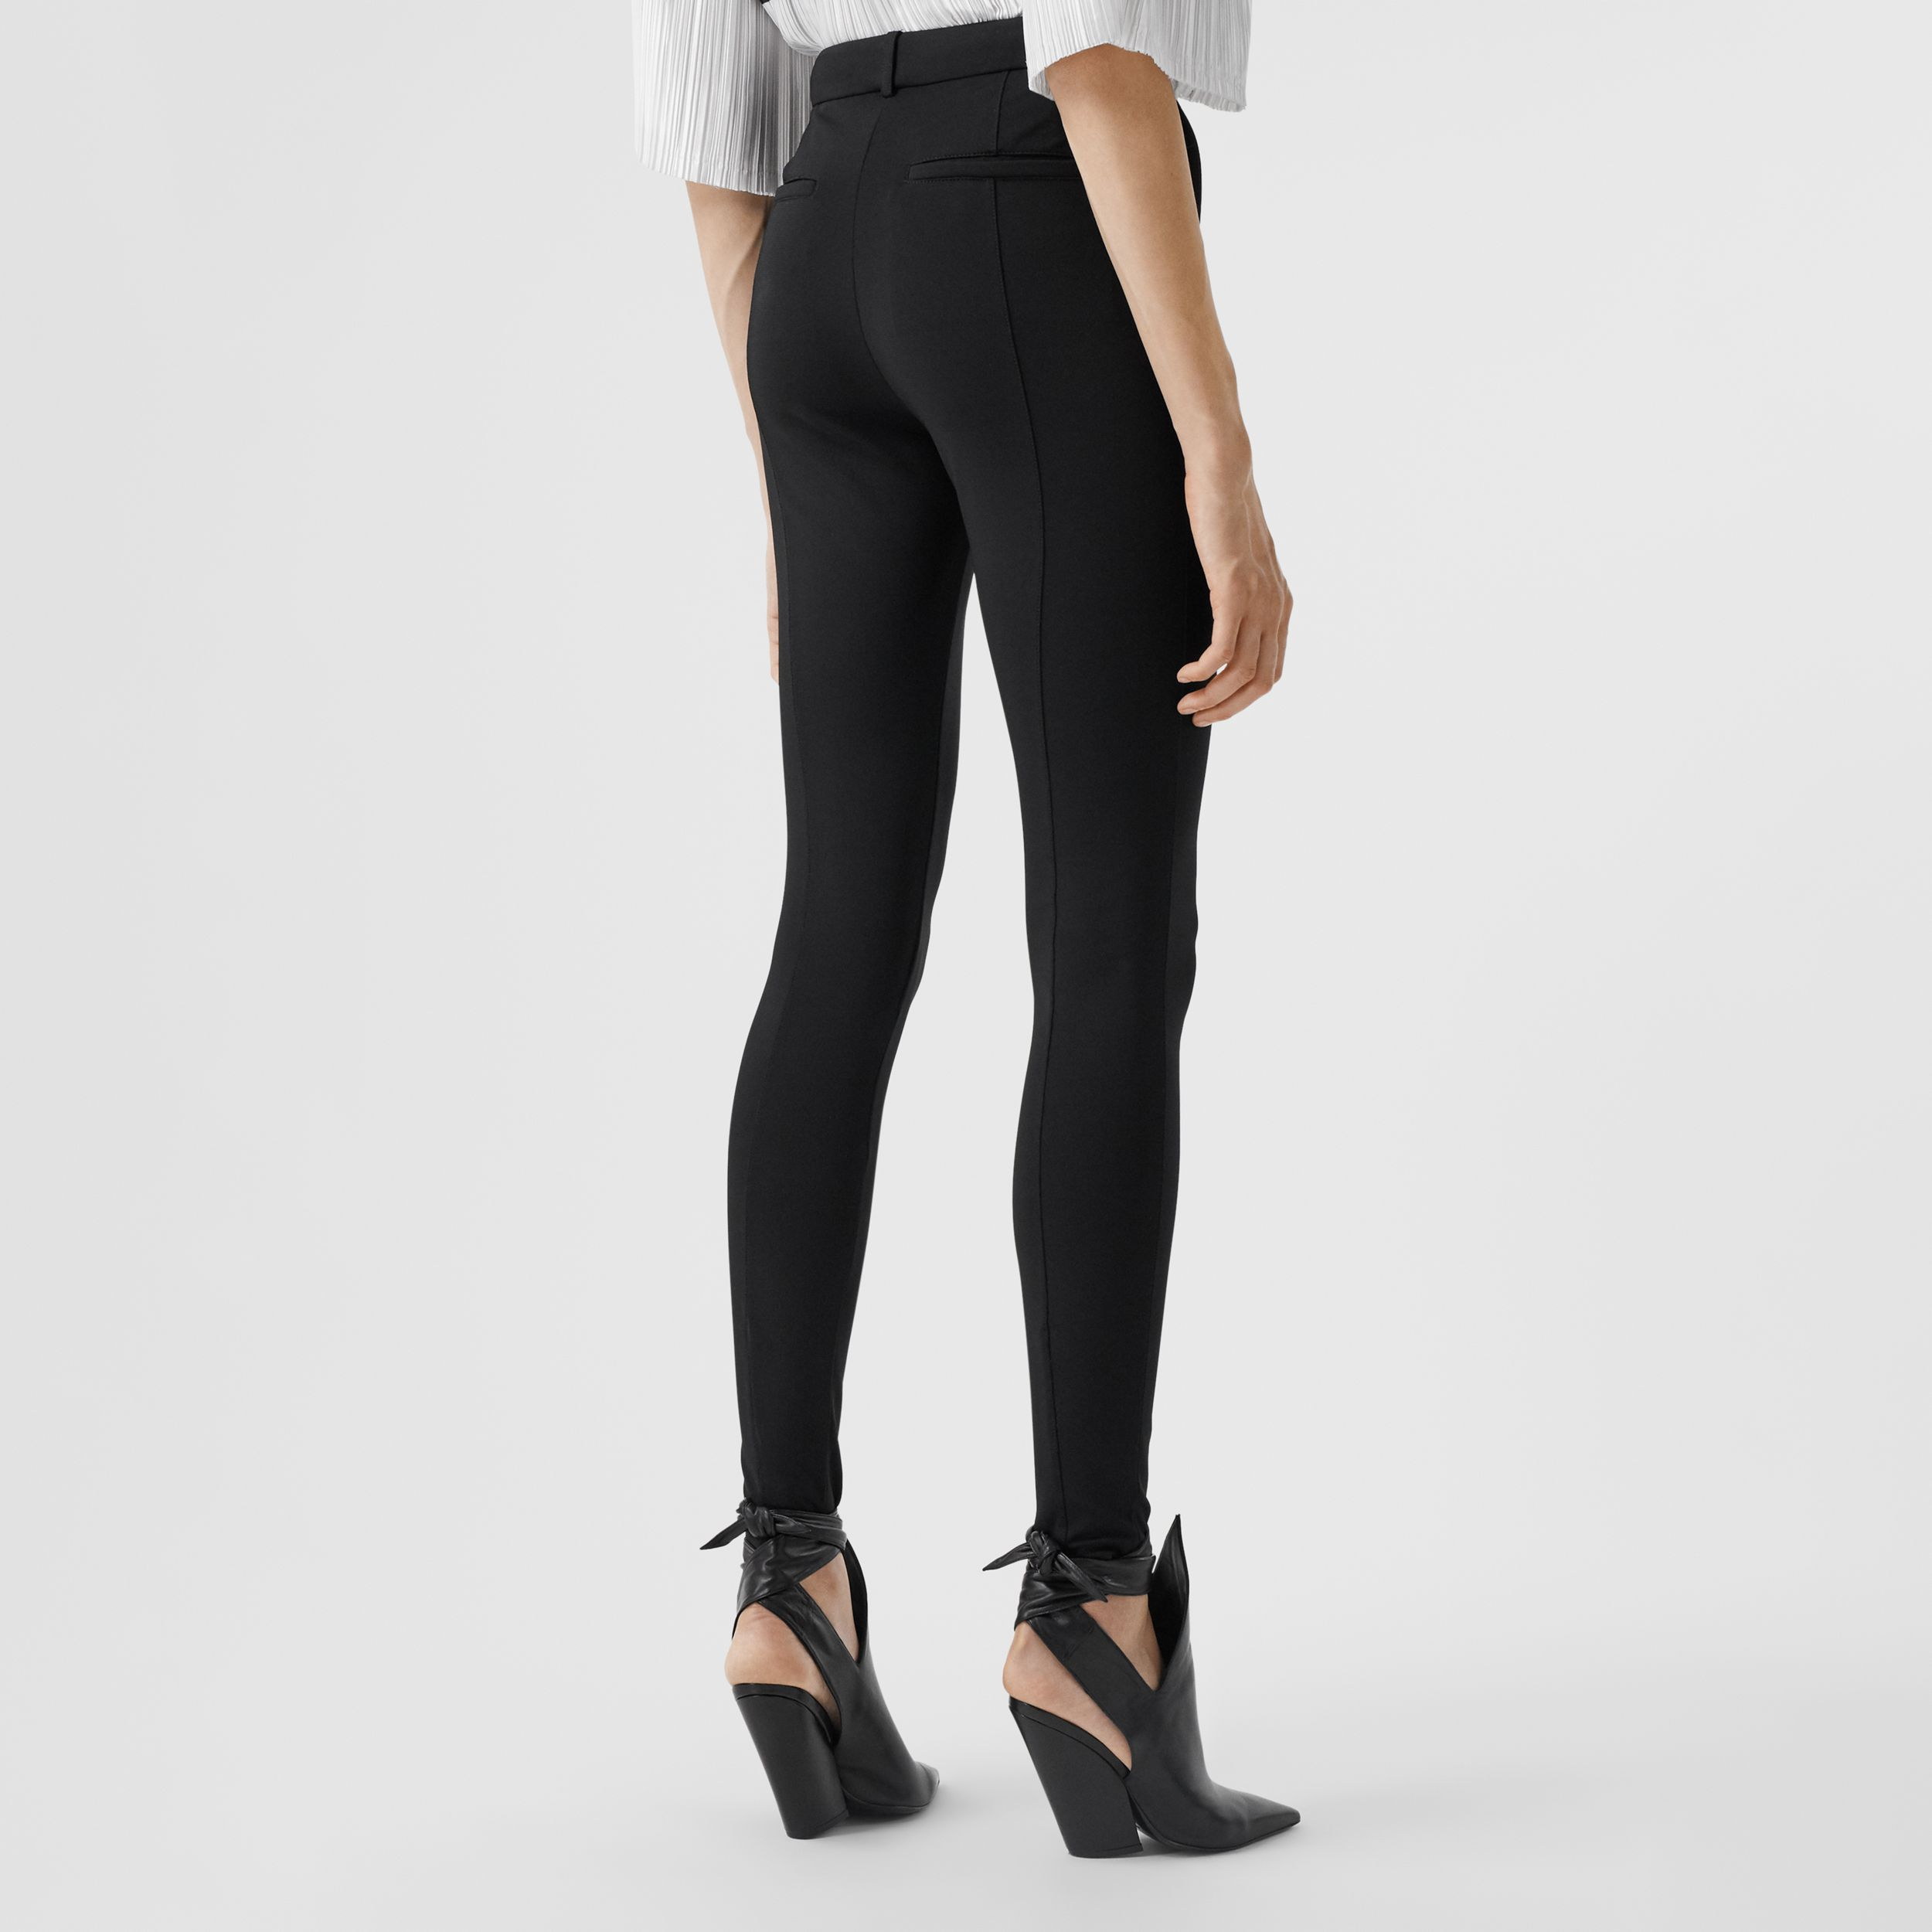 Stretch Jersey Jodhpurs in Black - Women | Burberry United States - 3